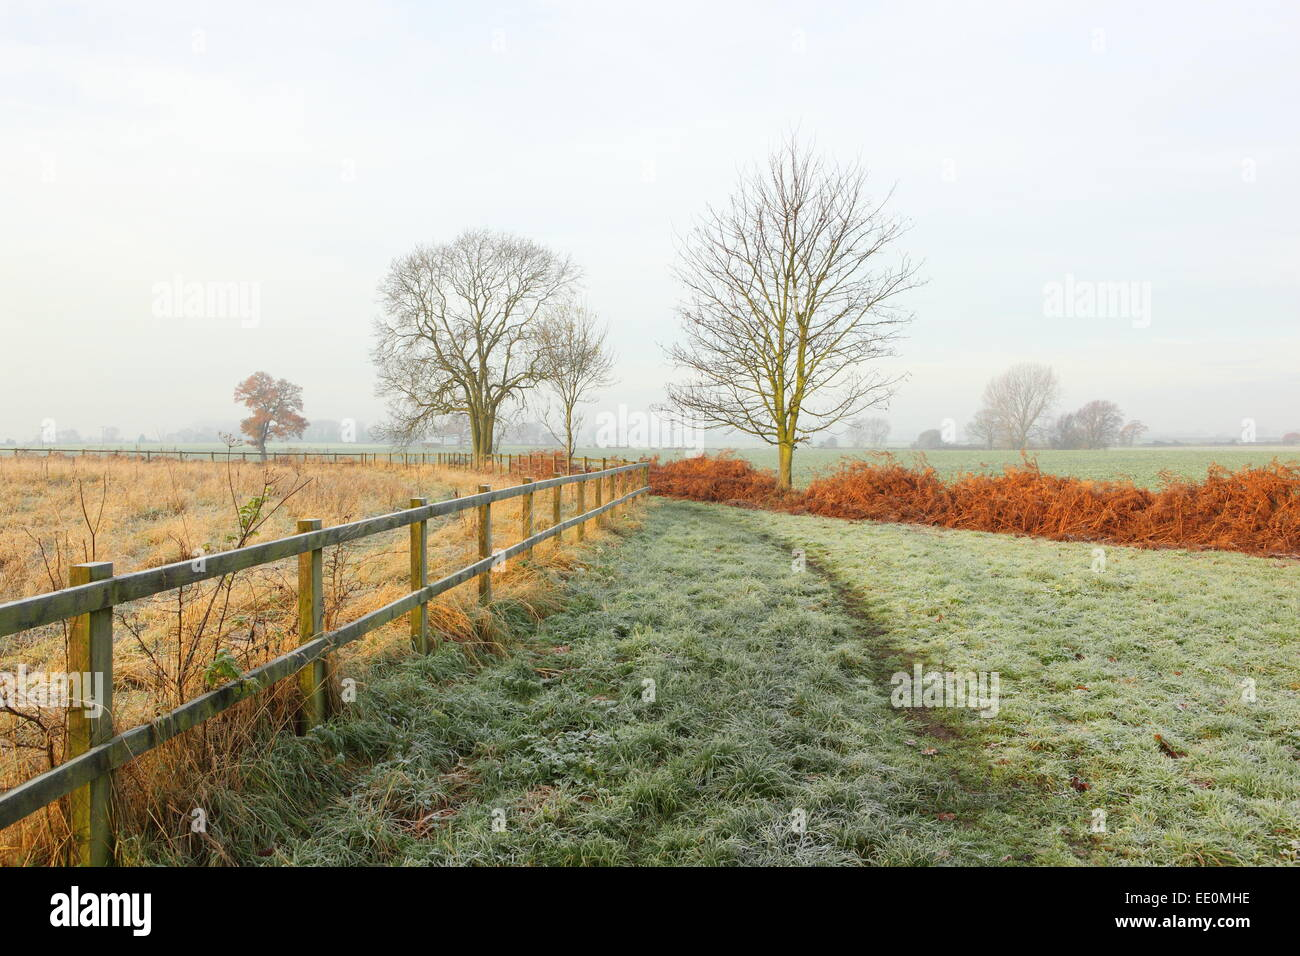 A frosty, misty, winter morning in the countryside with a grassy footpath between bracken ferns and a post and rail - Stock Image